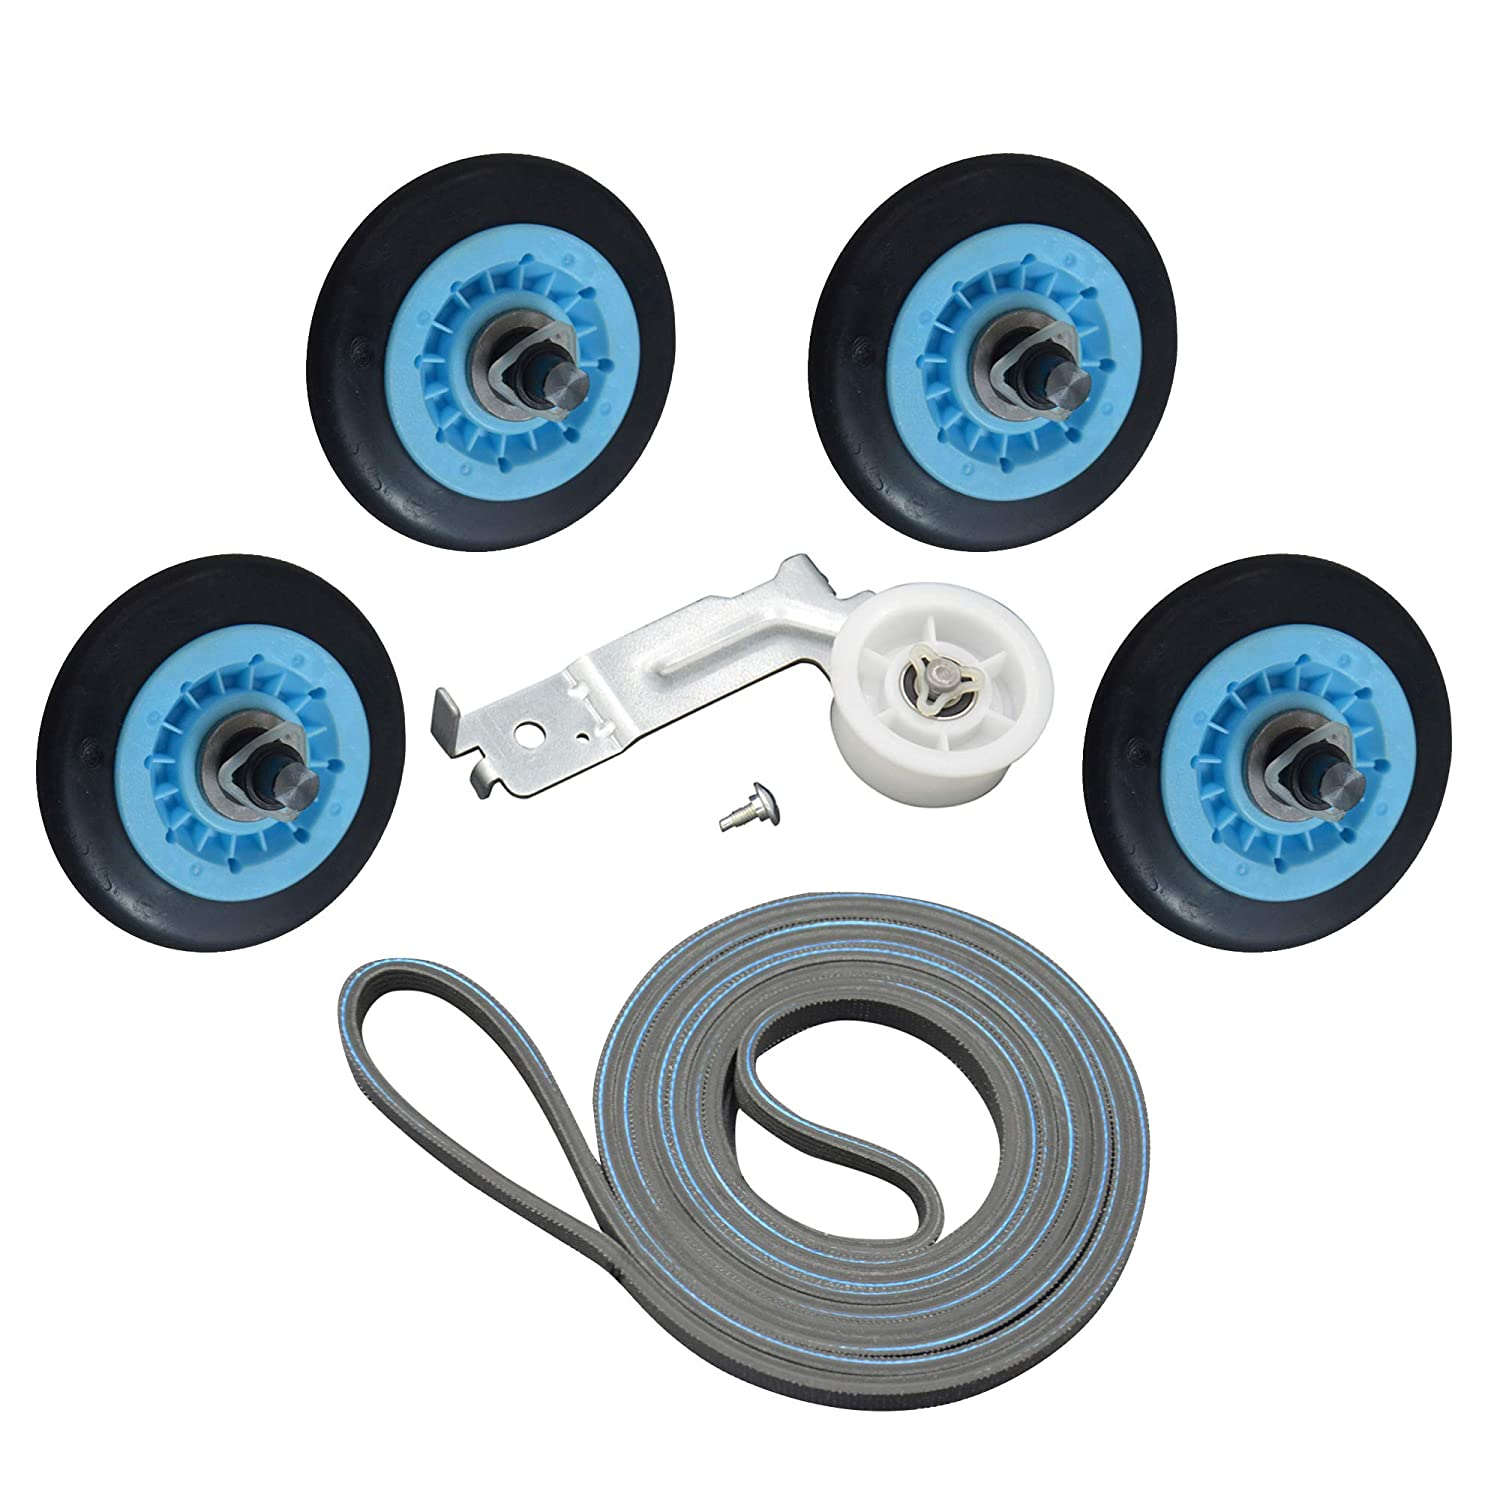 ATMA Dryer Repair Kit Replacement Samsung Dryer Belt Maintenance Kit Include DC97-16782A Roller DC93-00634A Indler Pulley 6602-001655 Belt Replace AP5325135 AP4373659 AP6038887 PS4221885 PS4133825